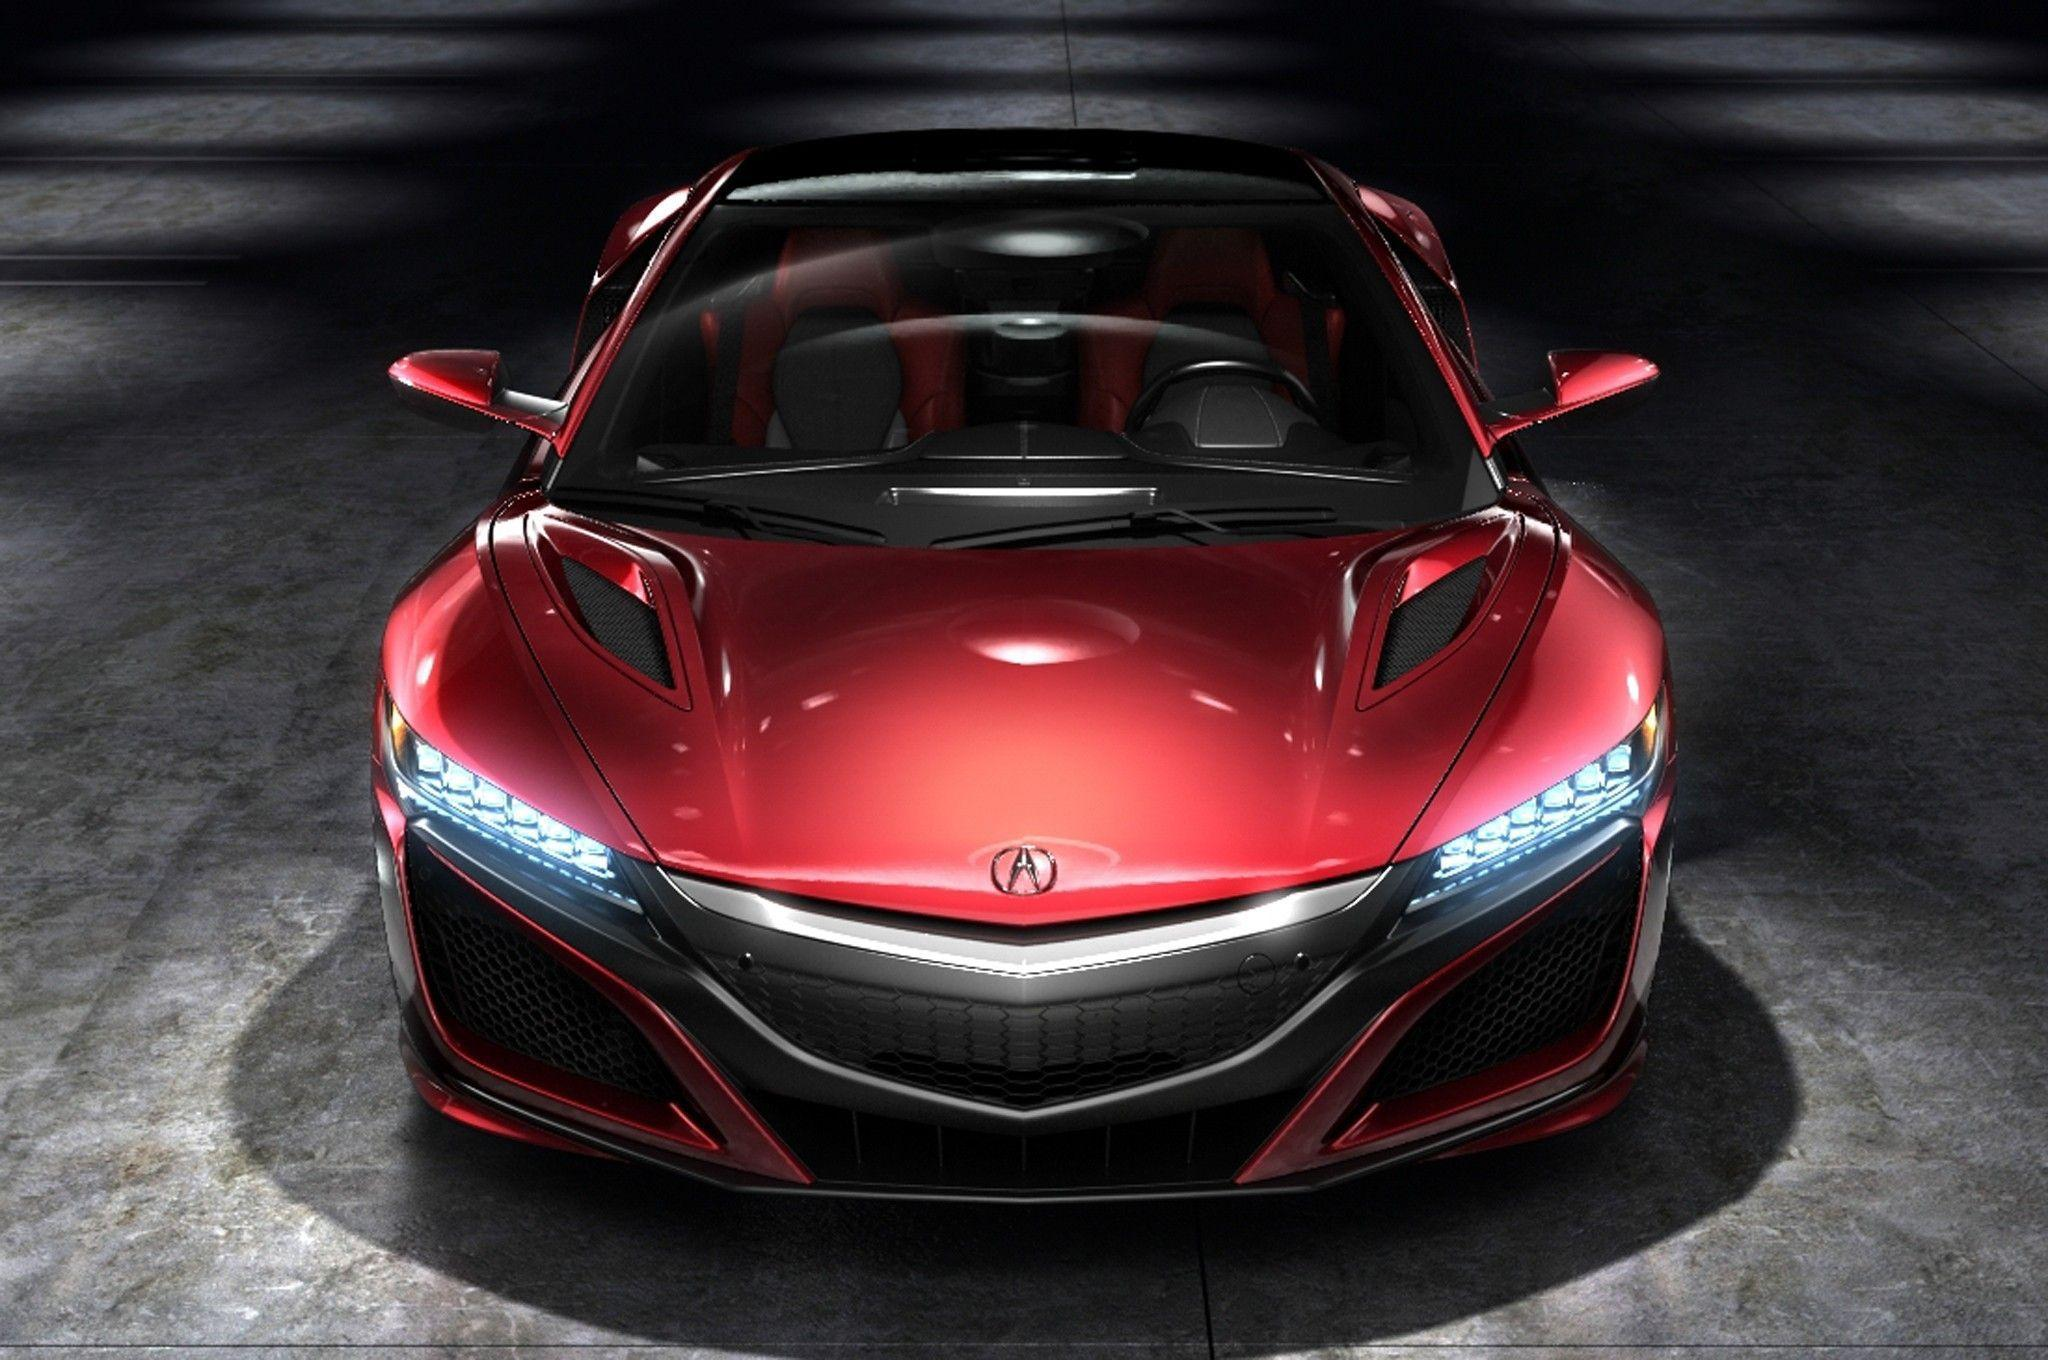 2017 Acura NSX Motion Wallpapers (17776) - Freefuncar.com